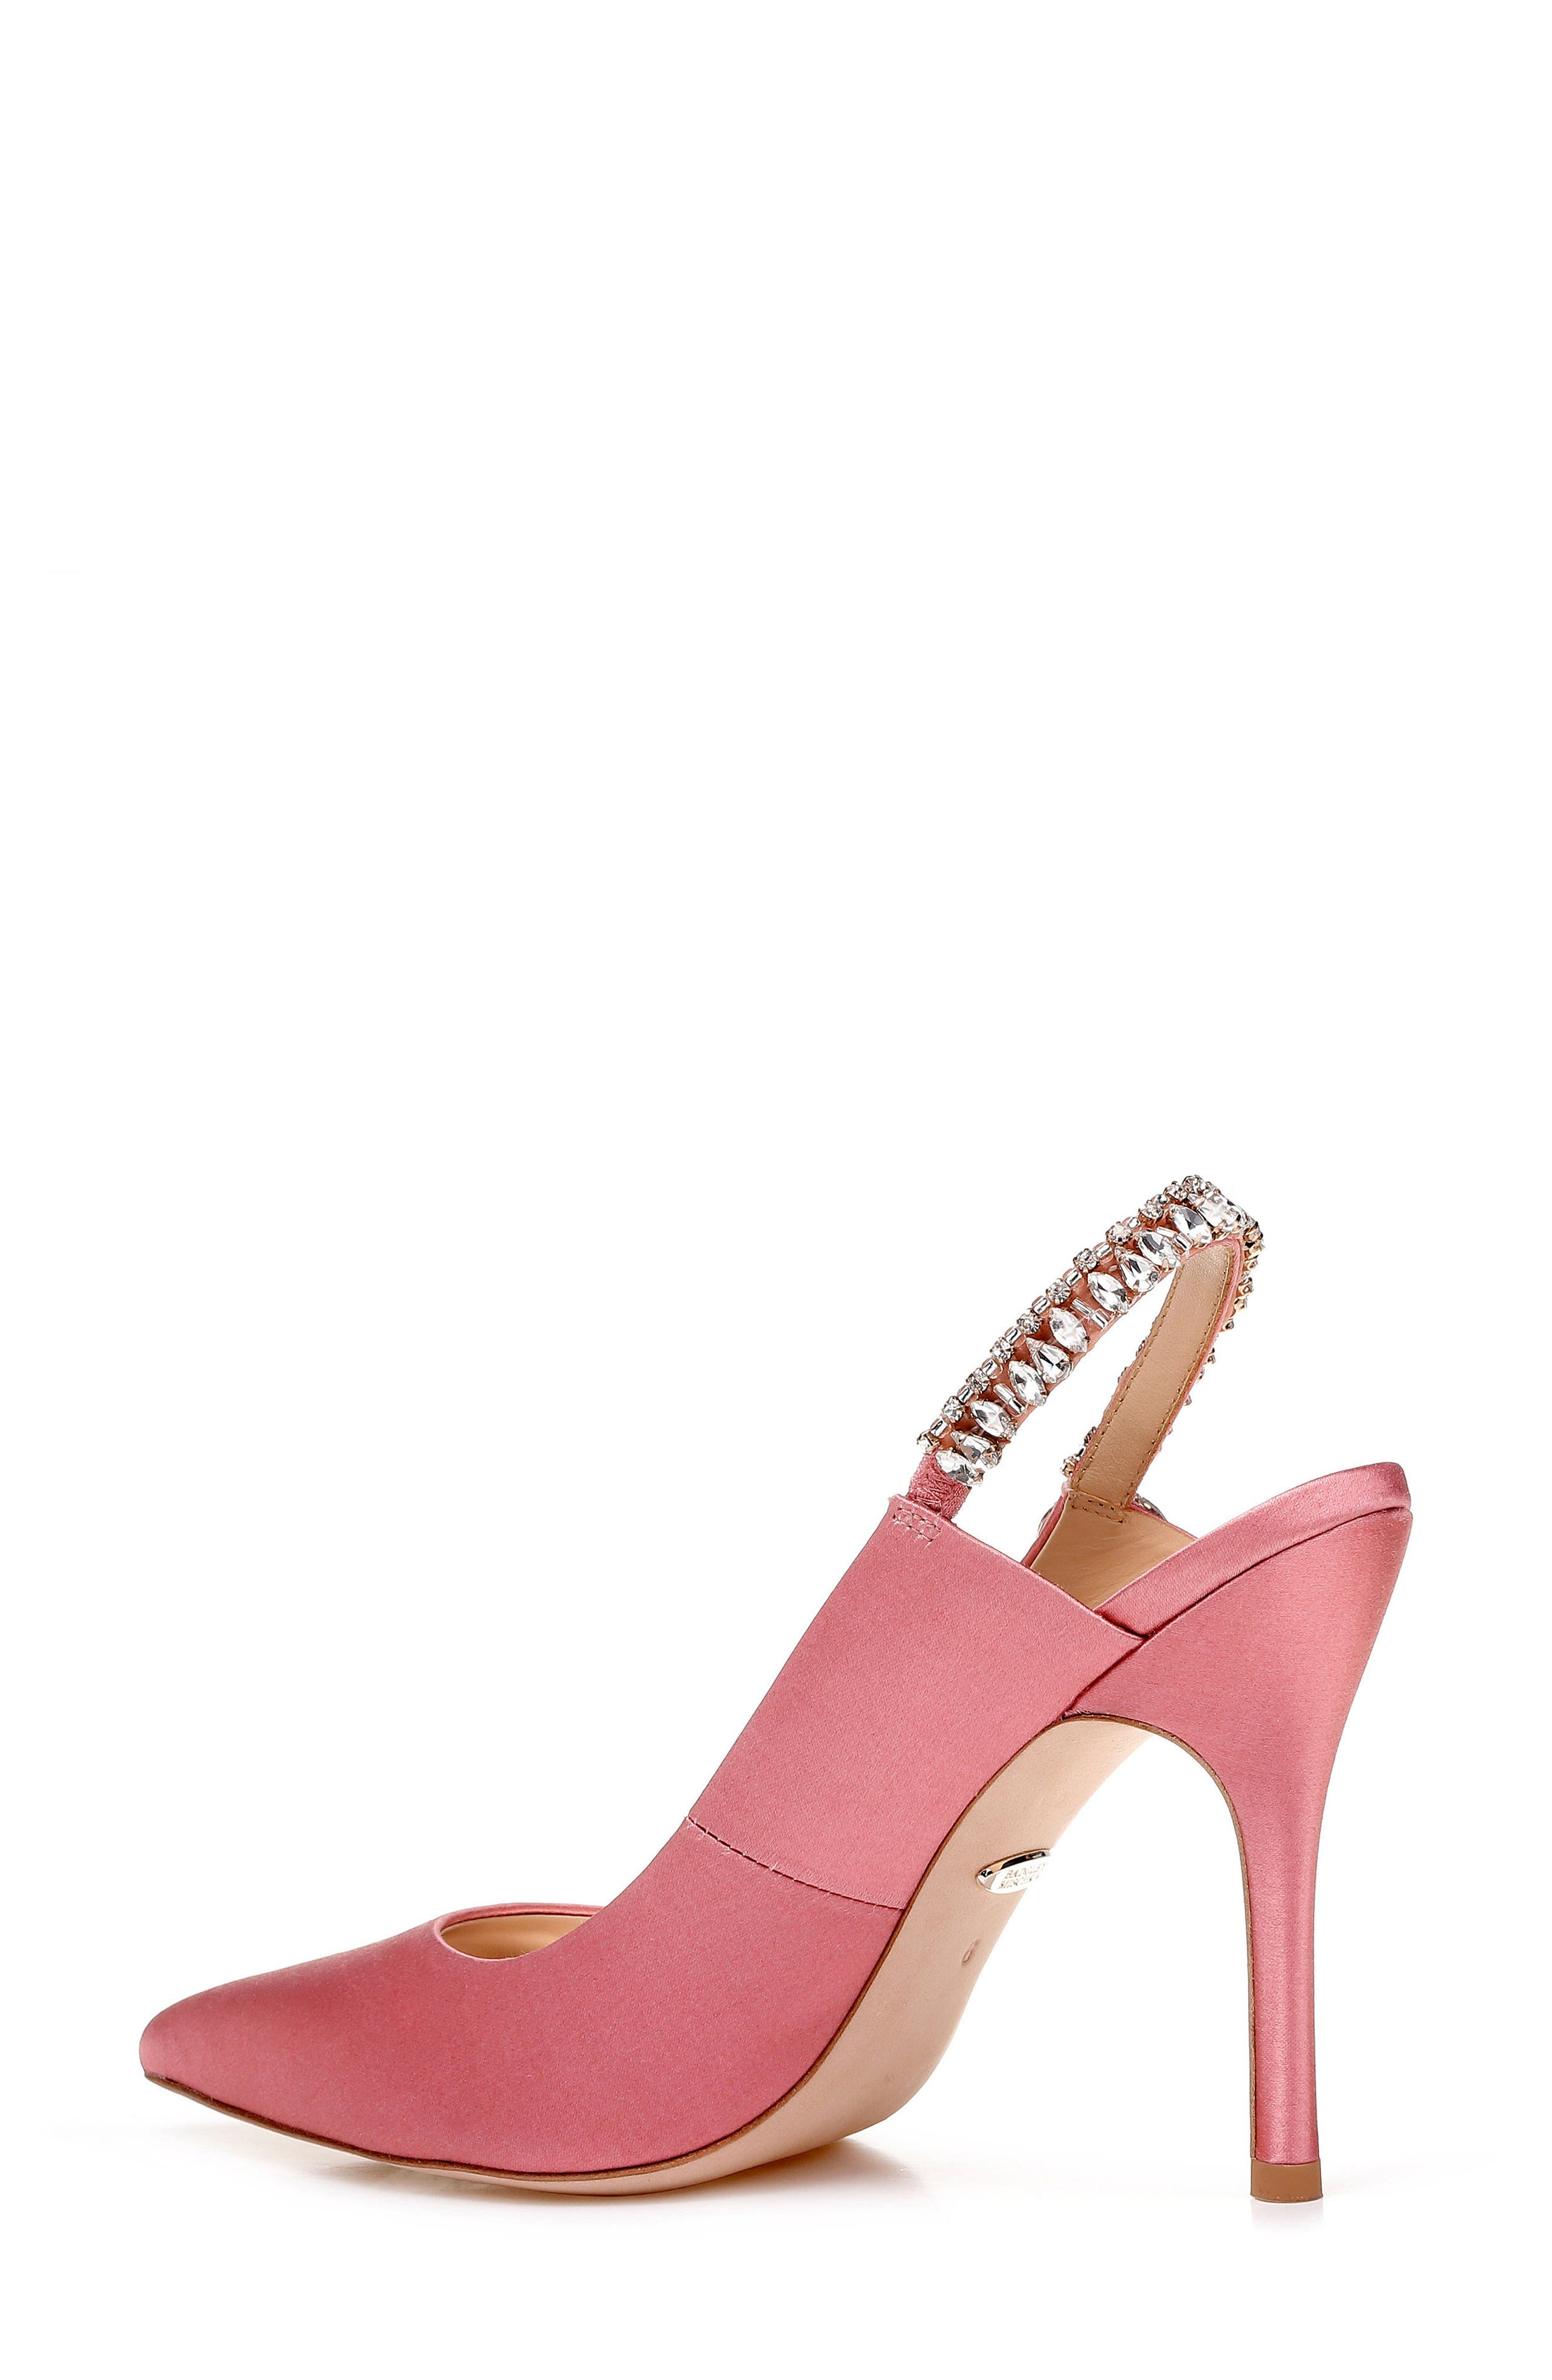 Paxton Pointy Toe Slingback Pump,                             Alternate thumbnail 2, color,                             ROSE SATIN